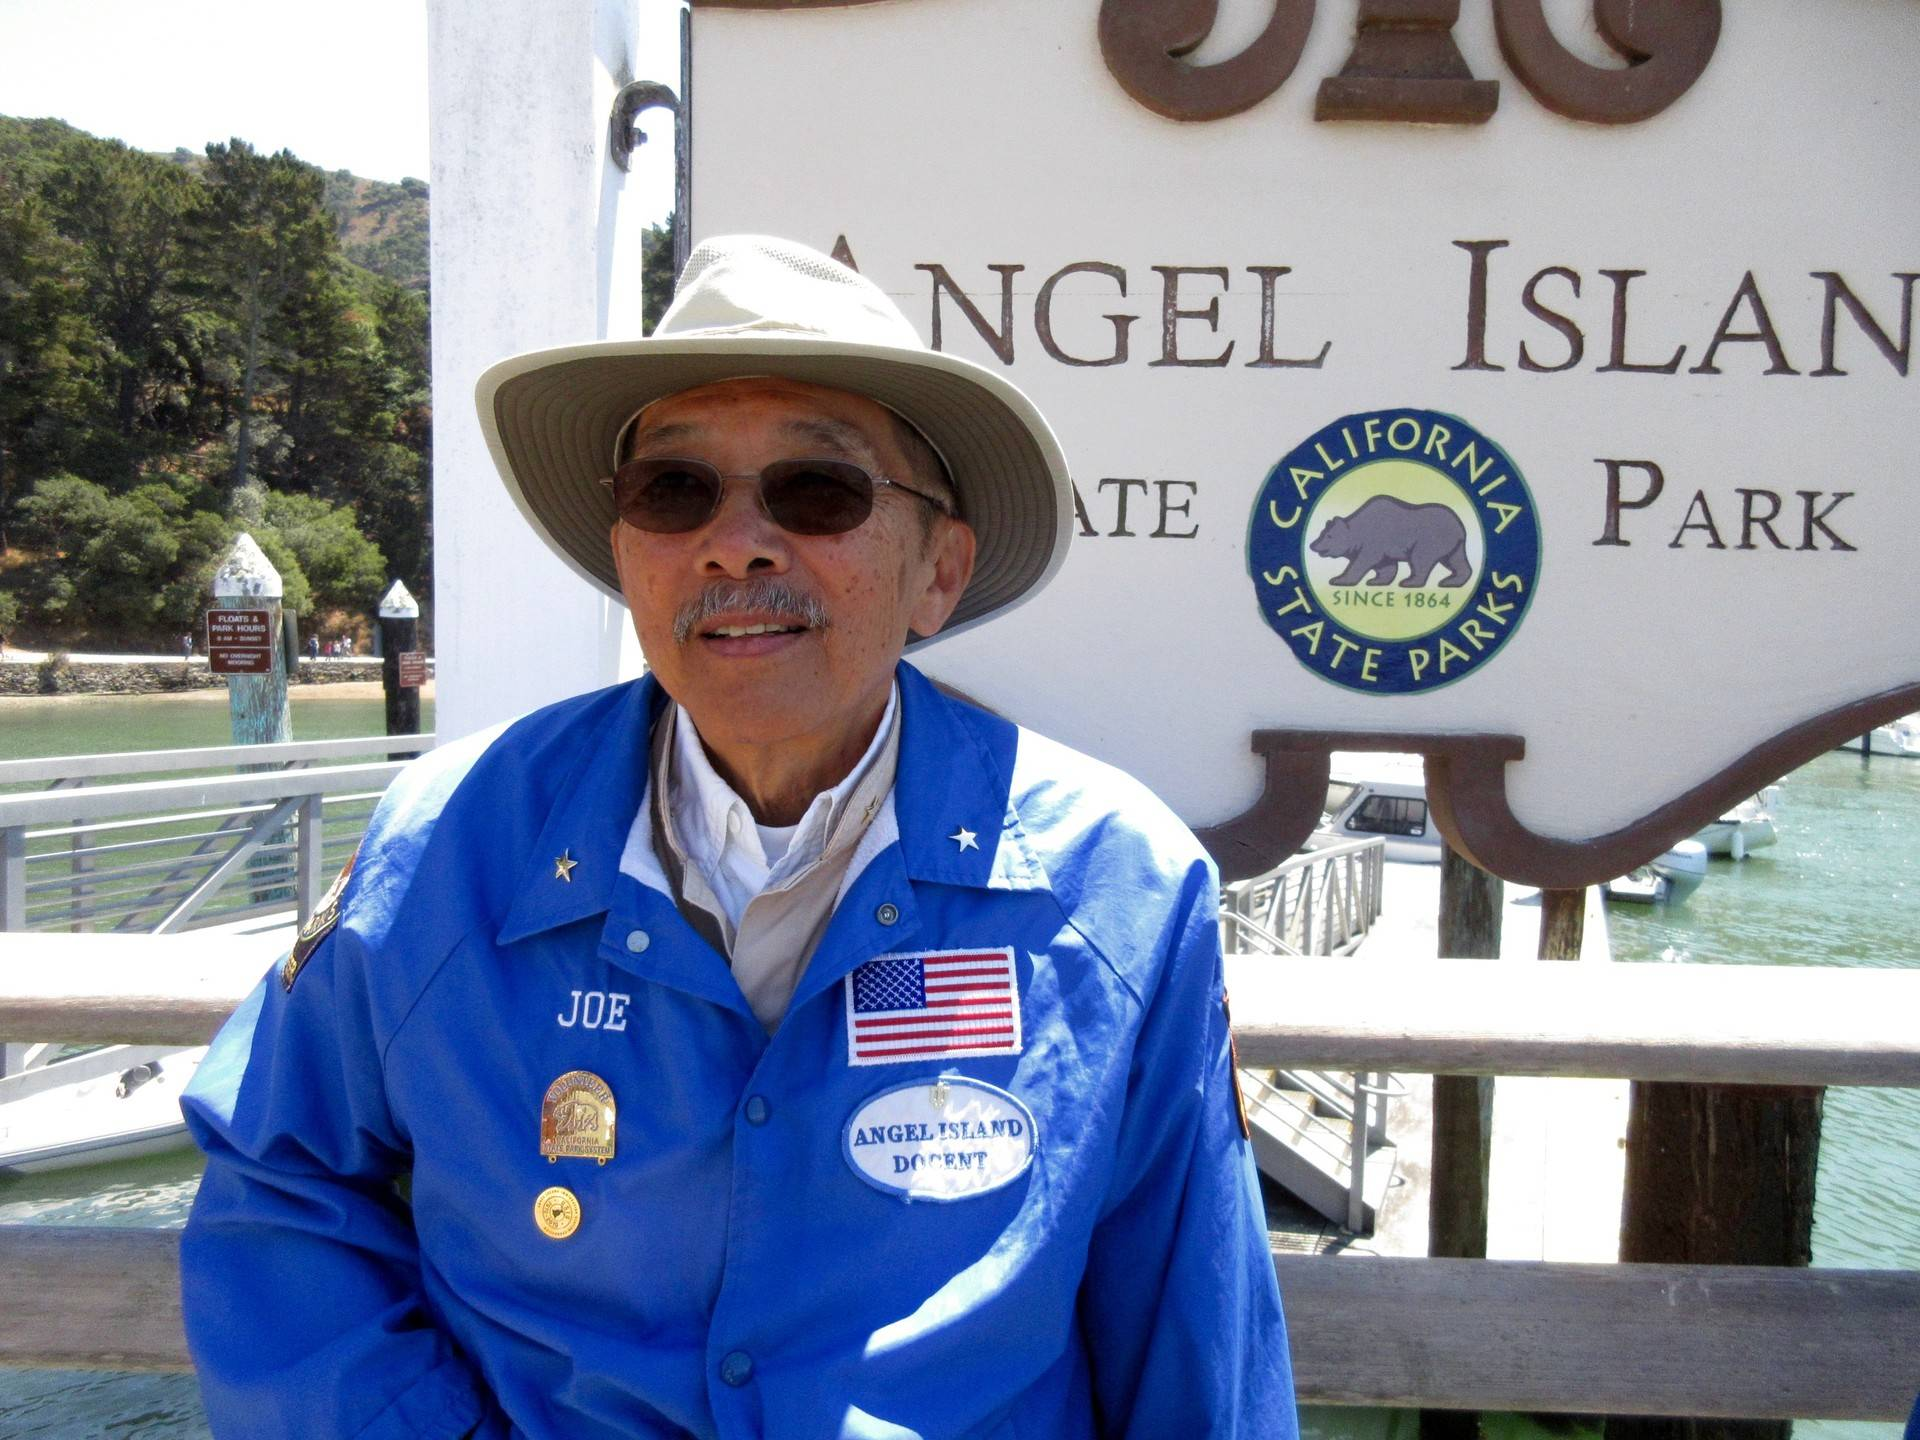 Joe Chan, volunteer docent, grew up not knowing his parents were detained at Angel Island.  Marisol Medina-Cadena/KQED